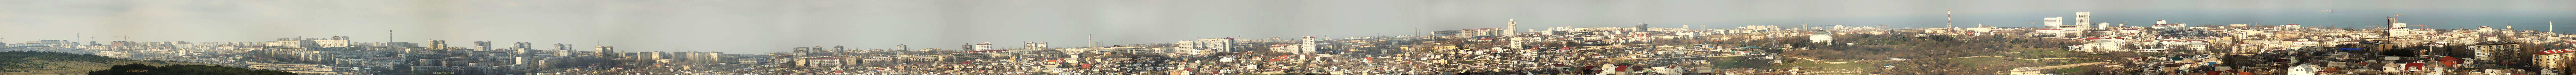 sevastopol, panorama of city